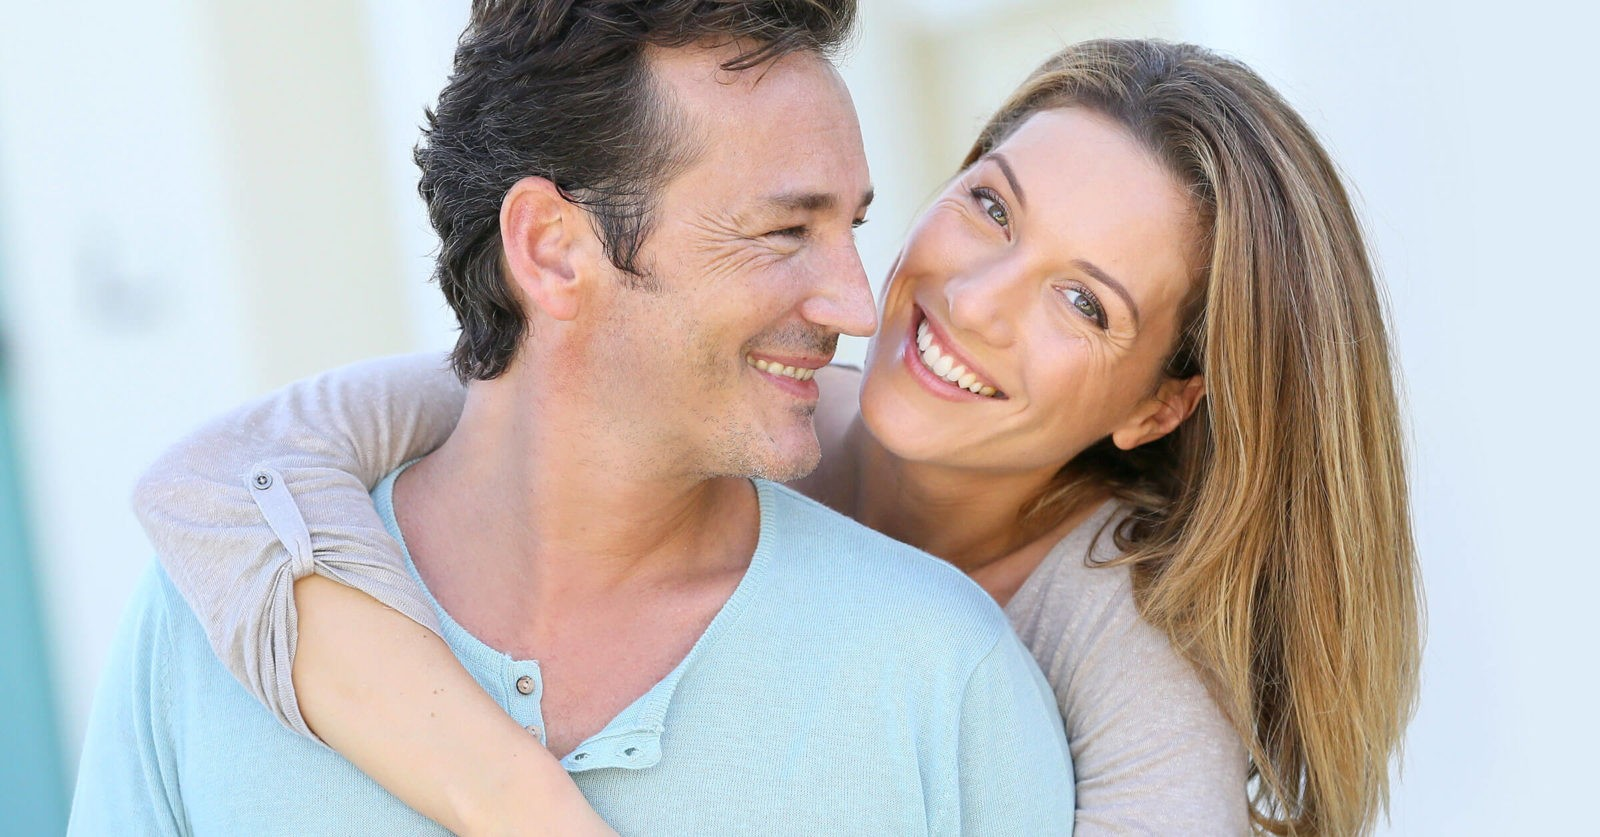 Skin Works Medical Spa is the best provider of best bio identical hormone replacement for men and women in Torrance and south bay los angeles